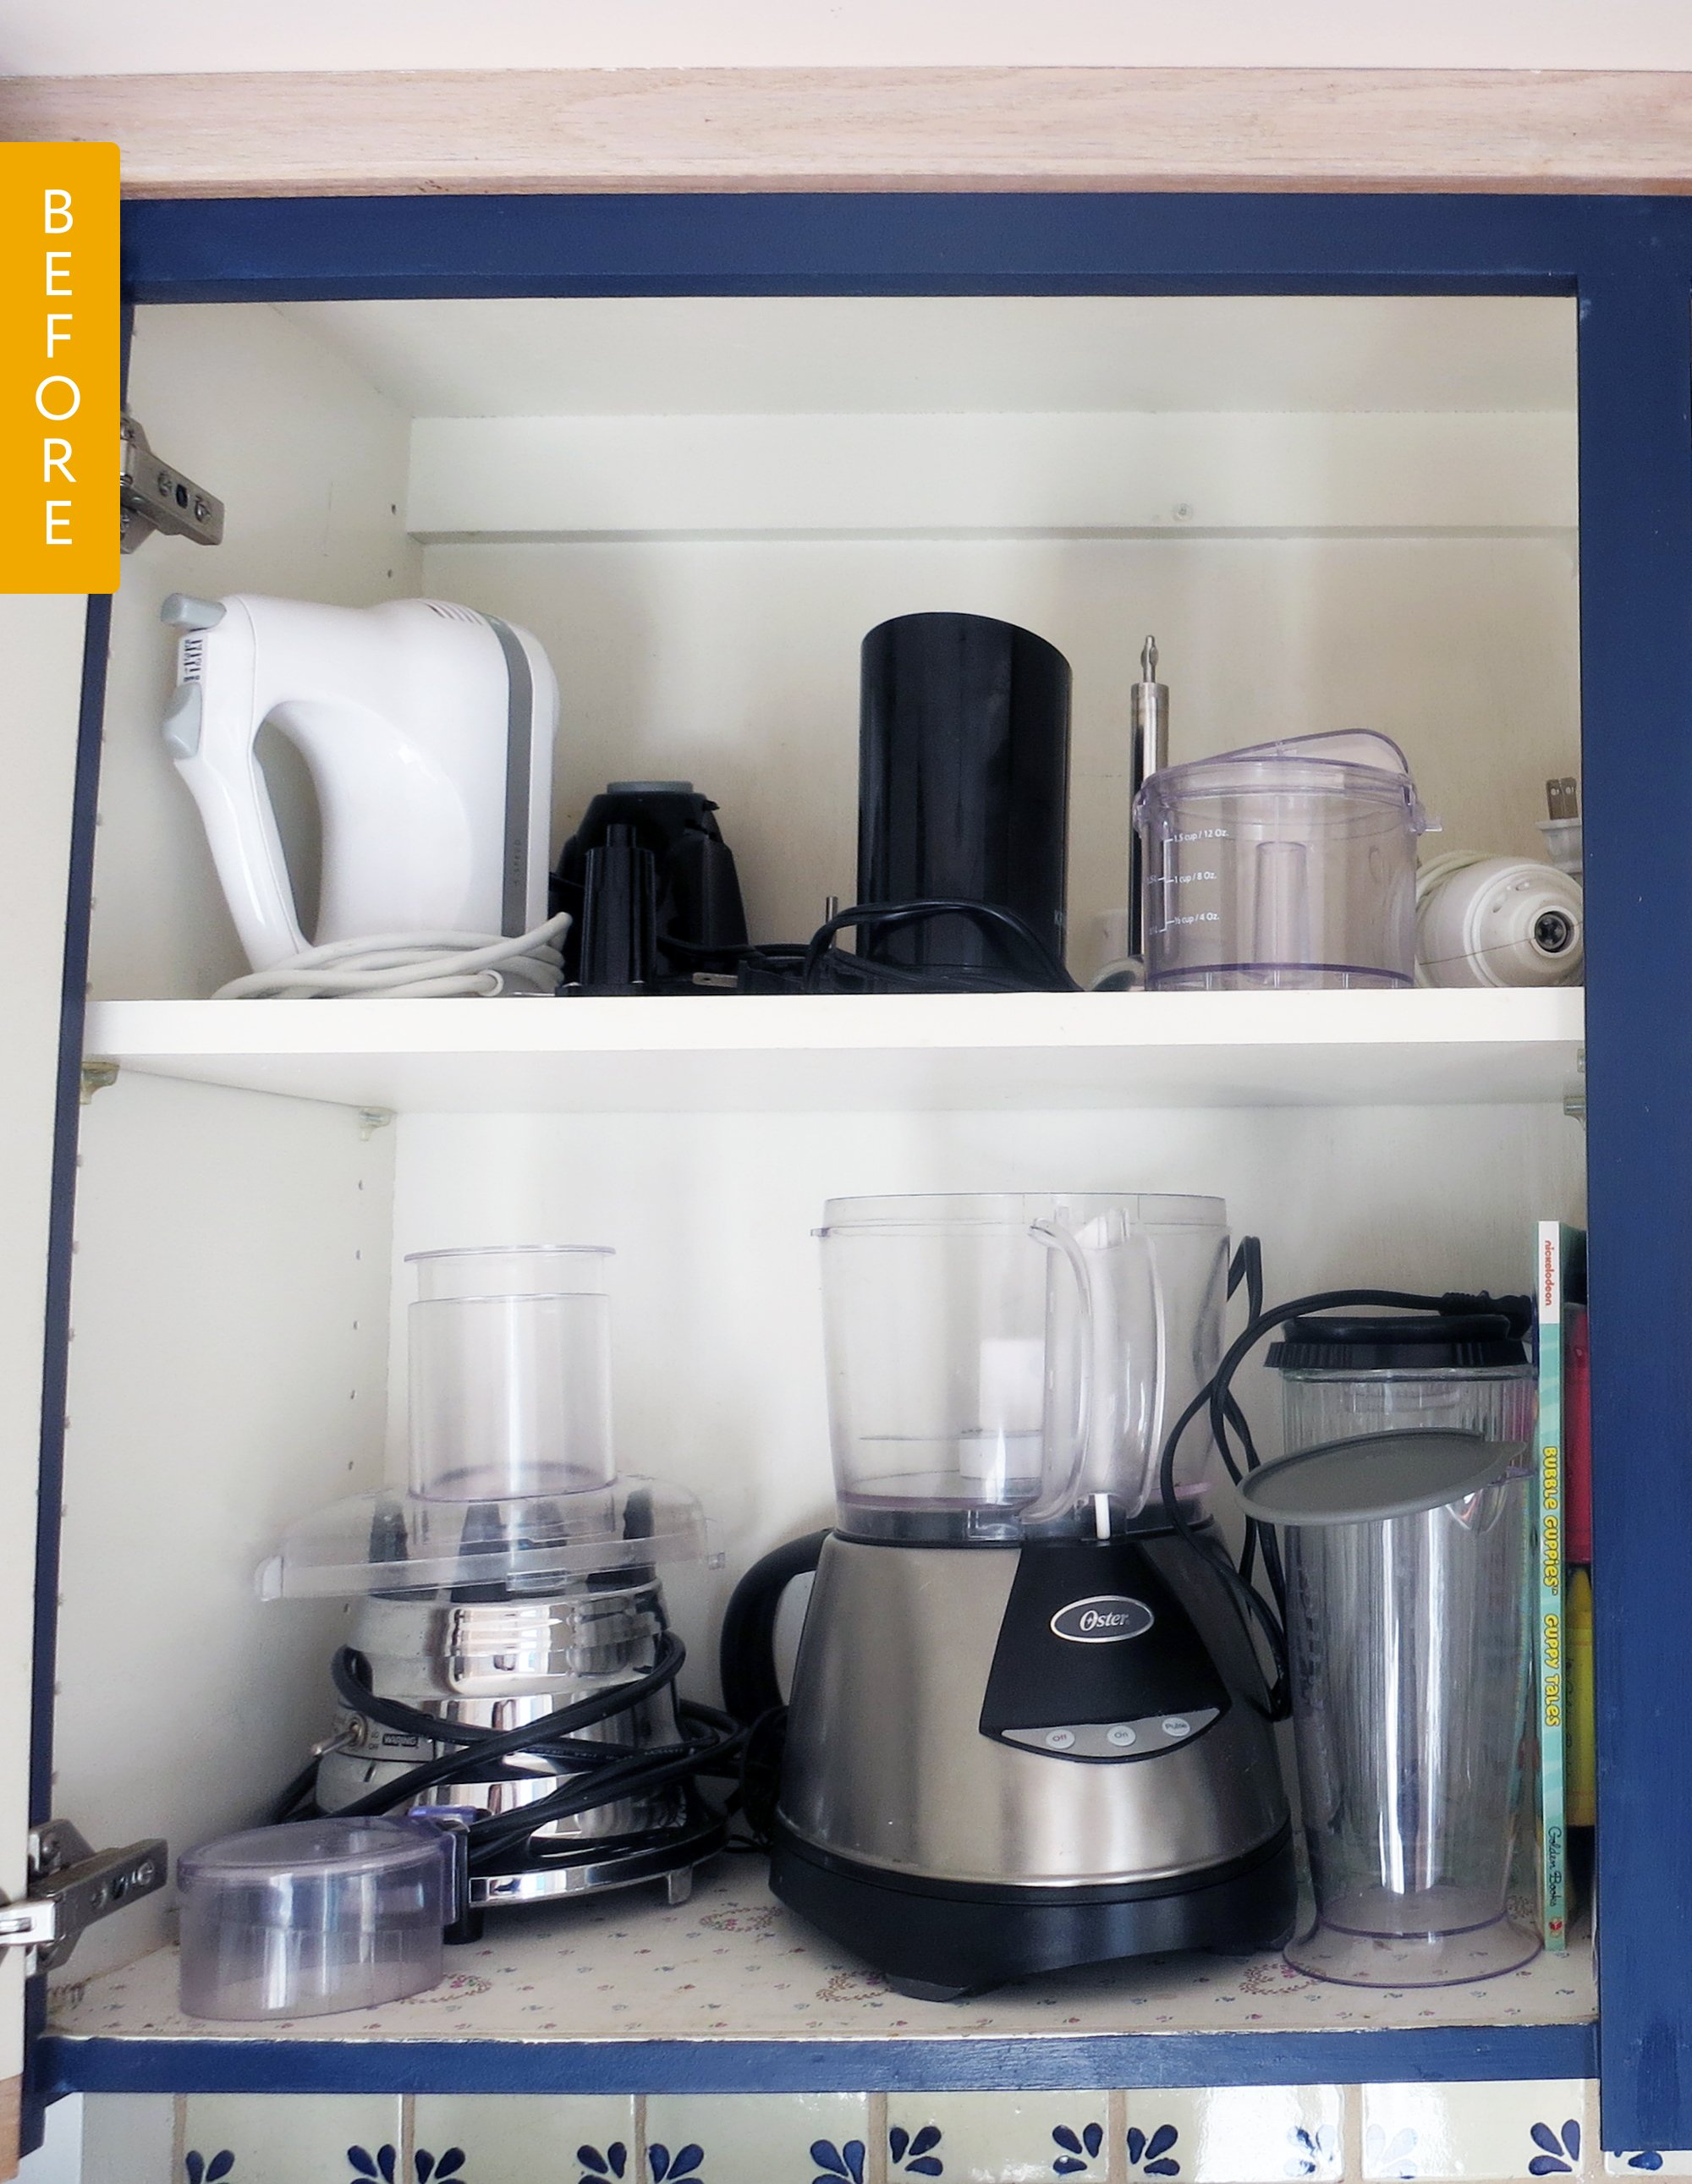 Appliance Cabinet Before After I Discovered The Best Way To Store Food Processor Blades Kitchn